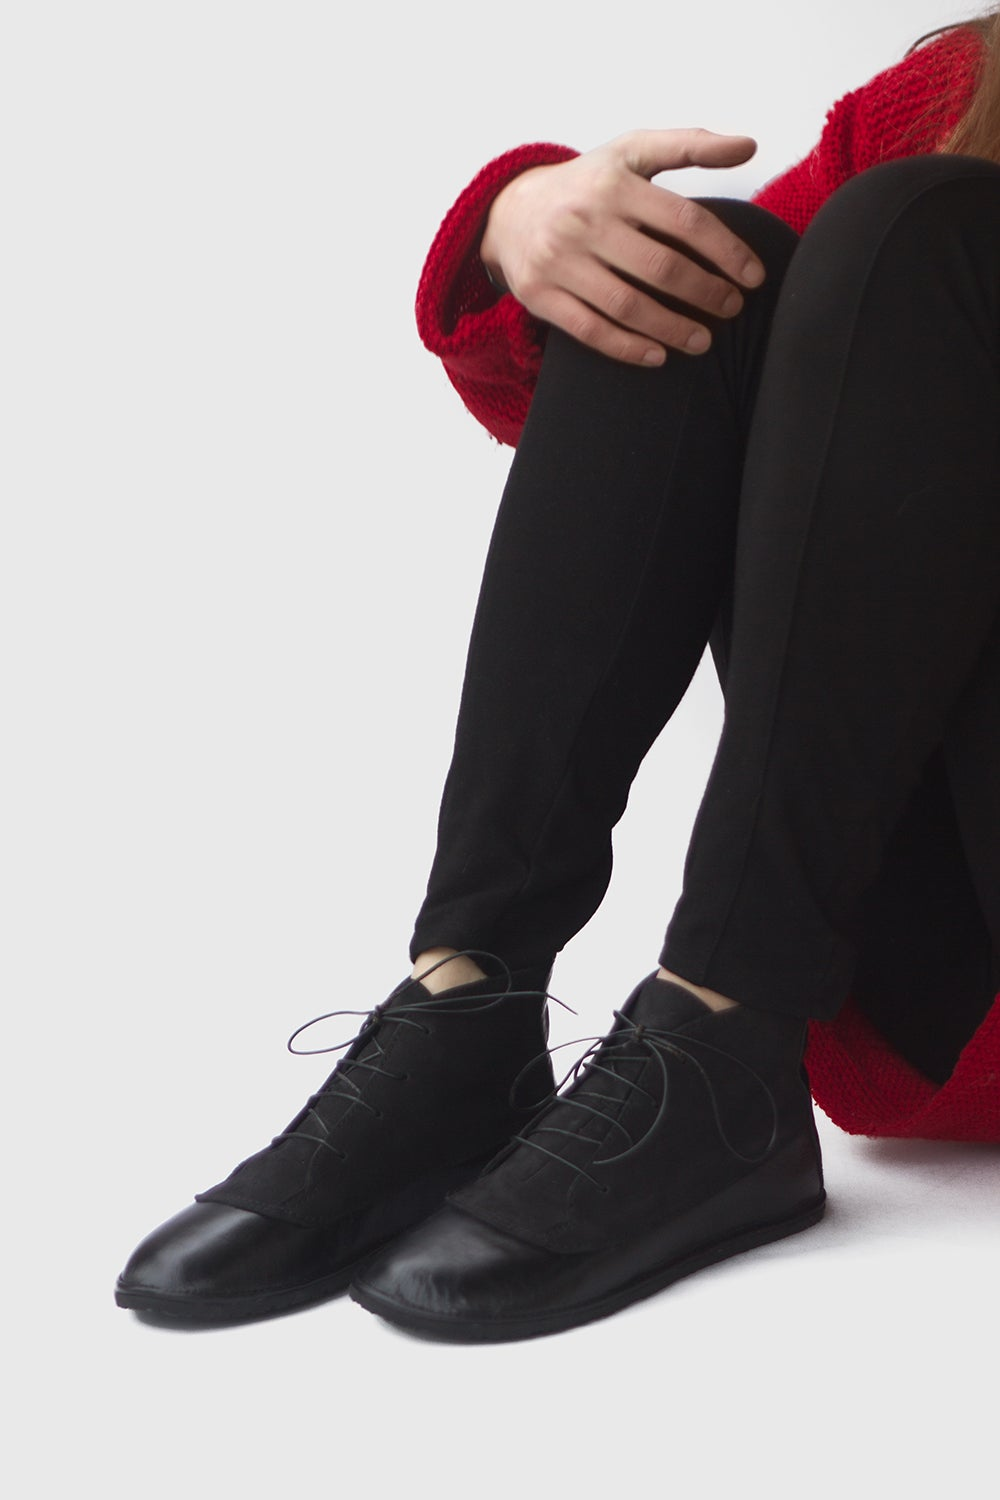 Image of Billie - Two textures Ankle boots